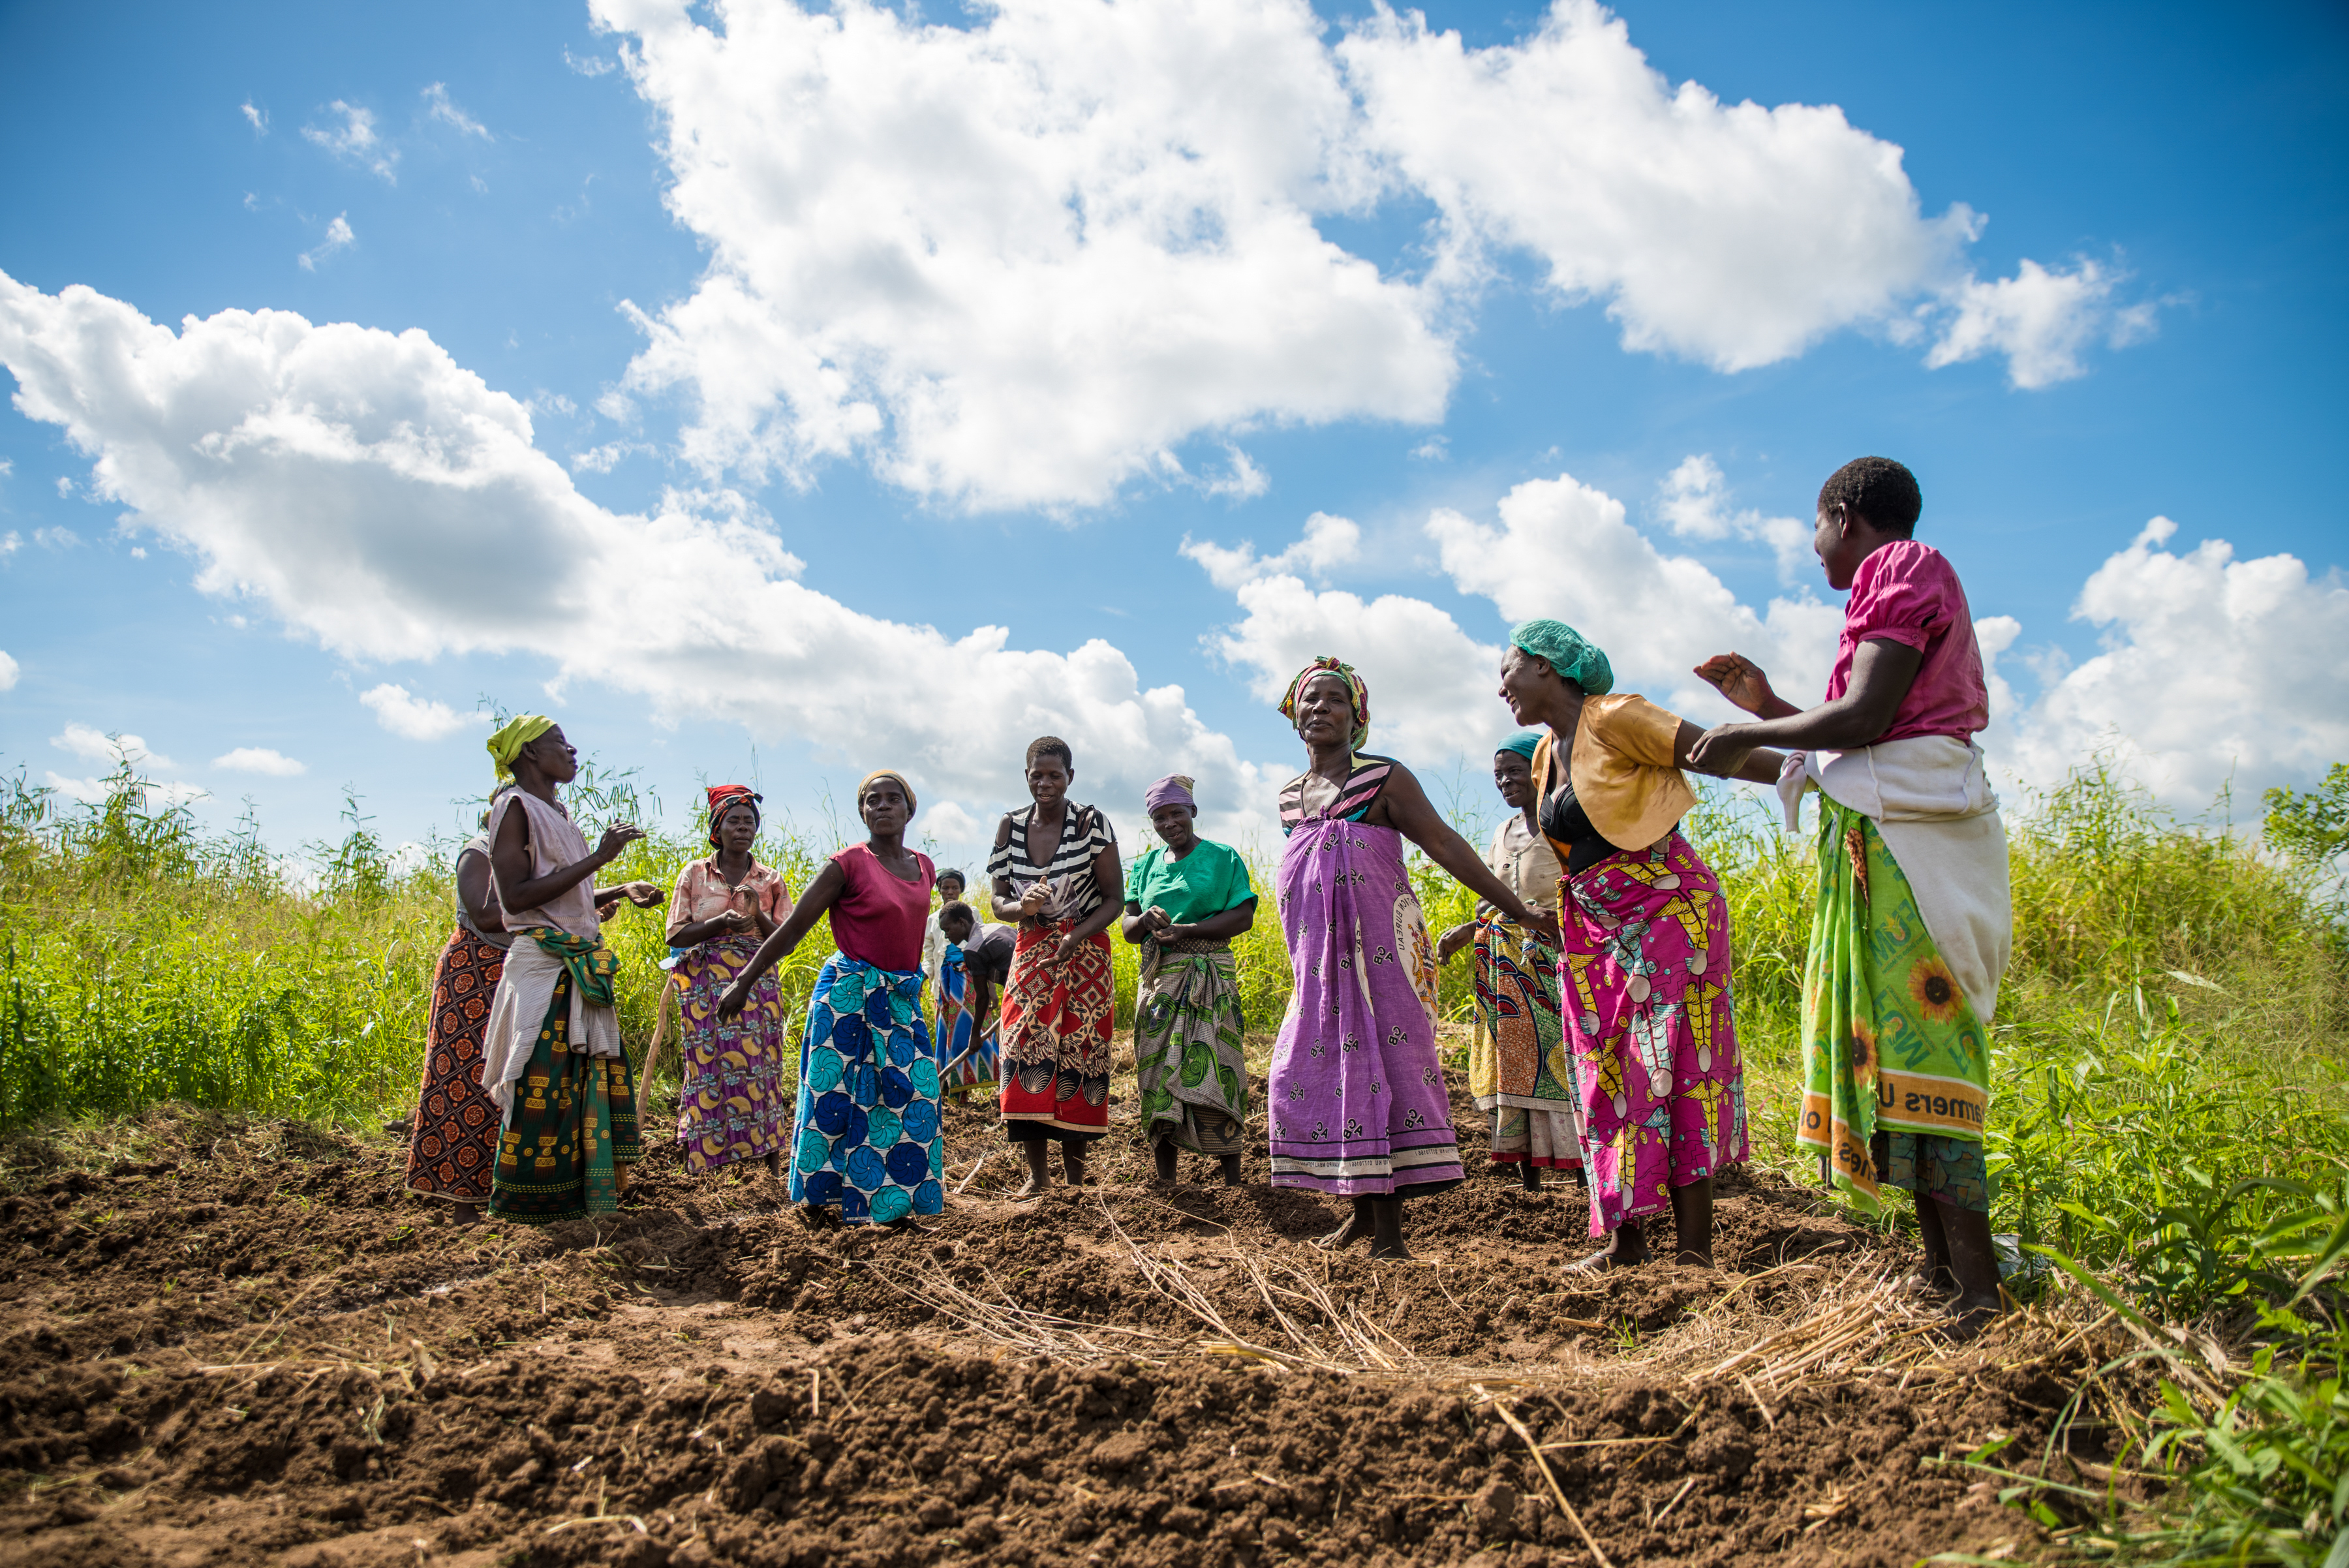 A group of women in colorful clothes stand together on recently tilled land.